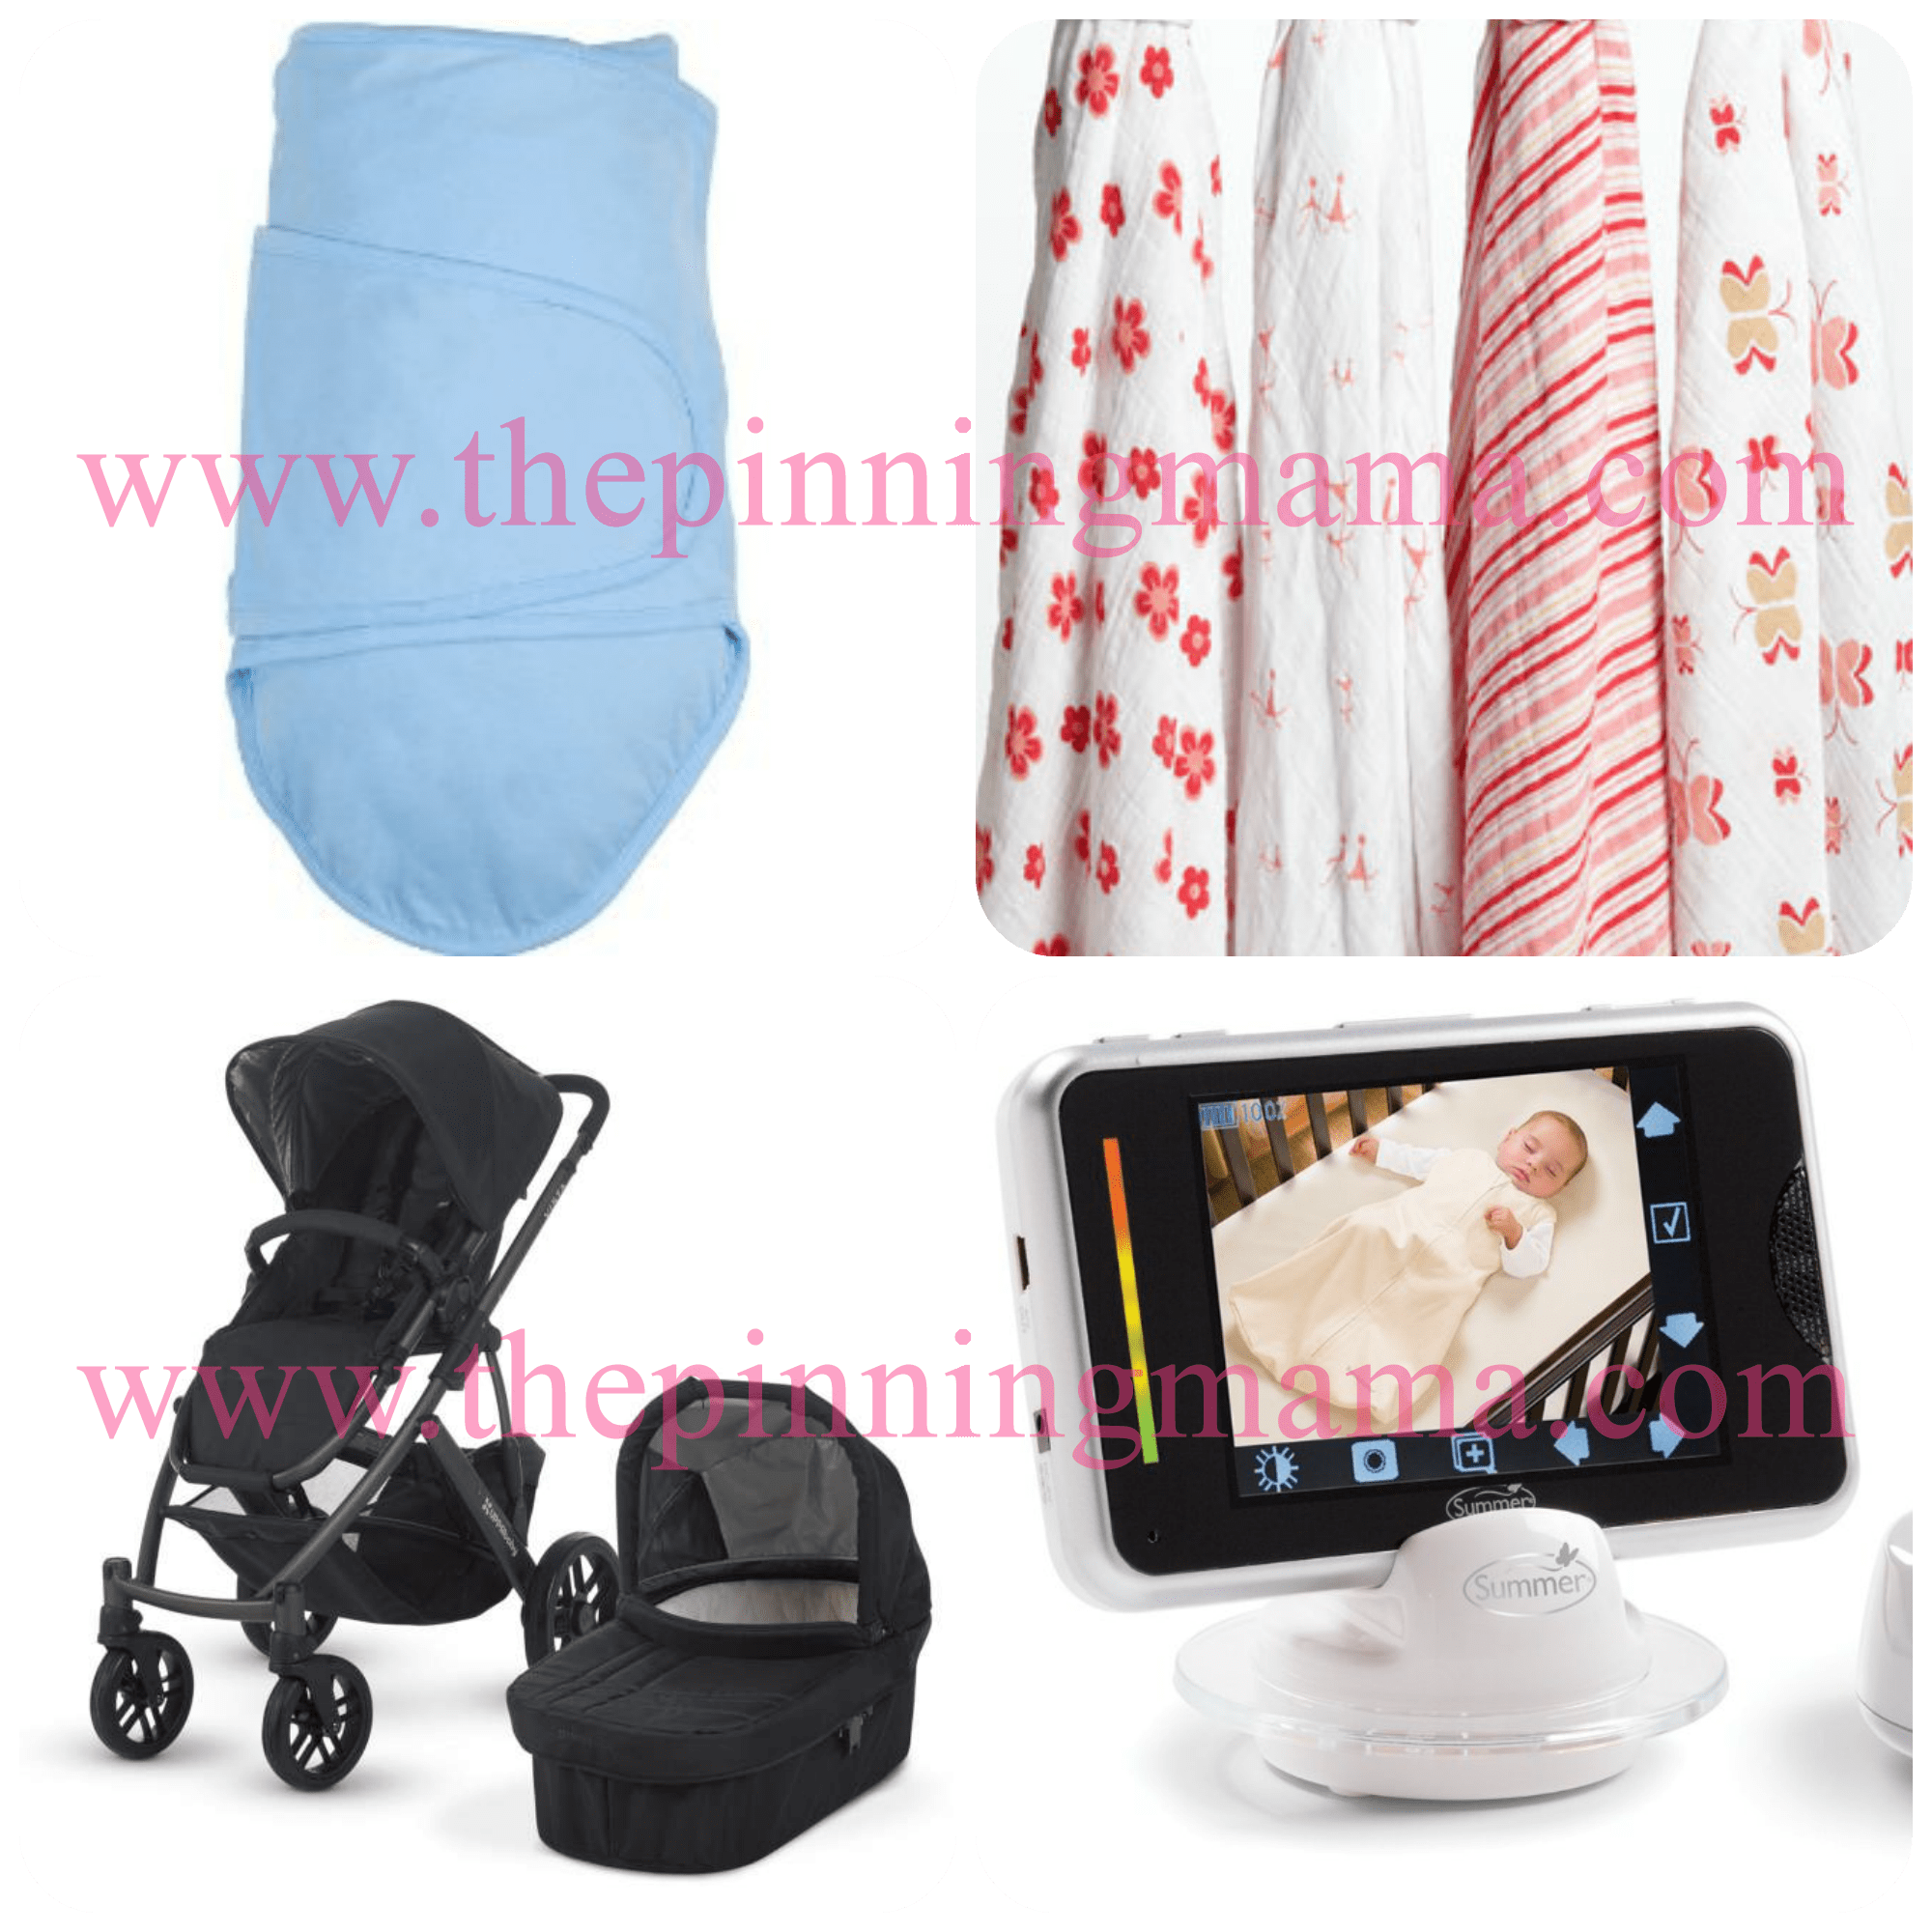 mom must haves, must-haves, mom essentials, essentials, baby essentials, baby products, uppababy, phil teds, swaddle, blankets, strollers, monitor, summer infant